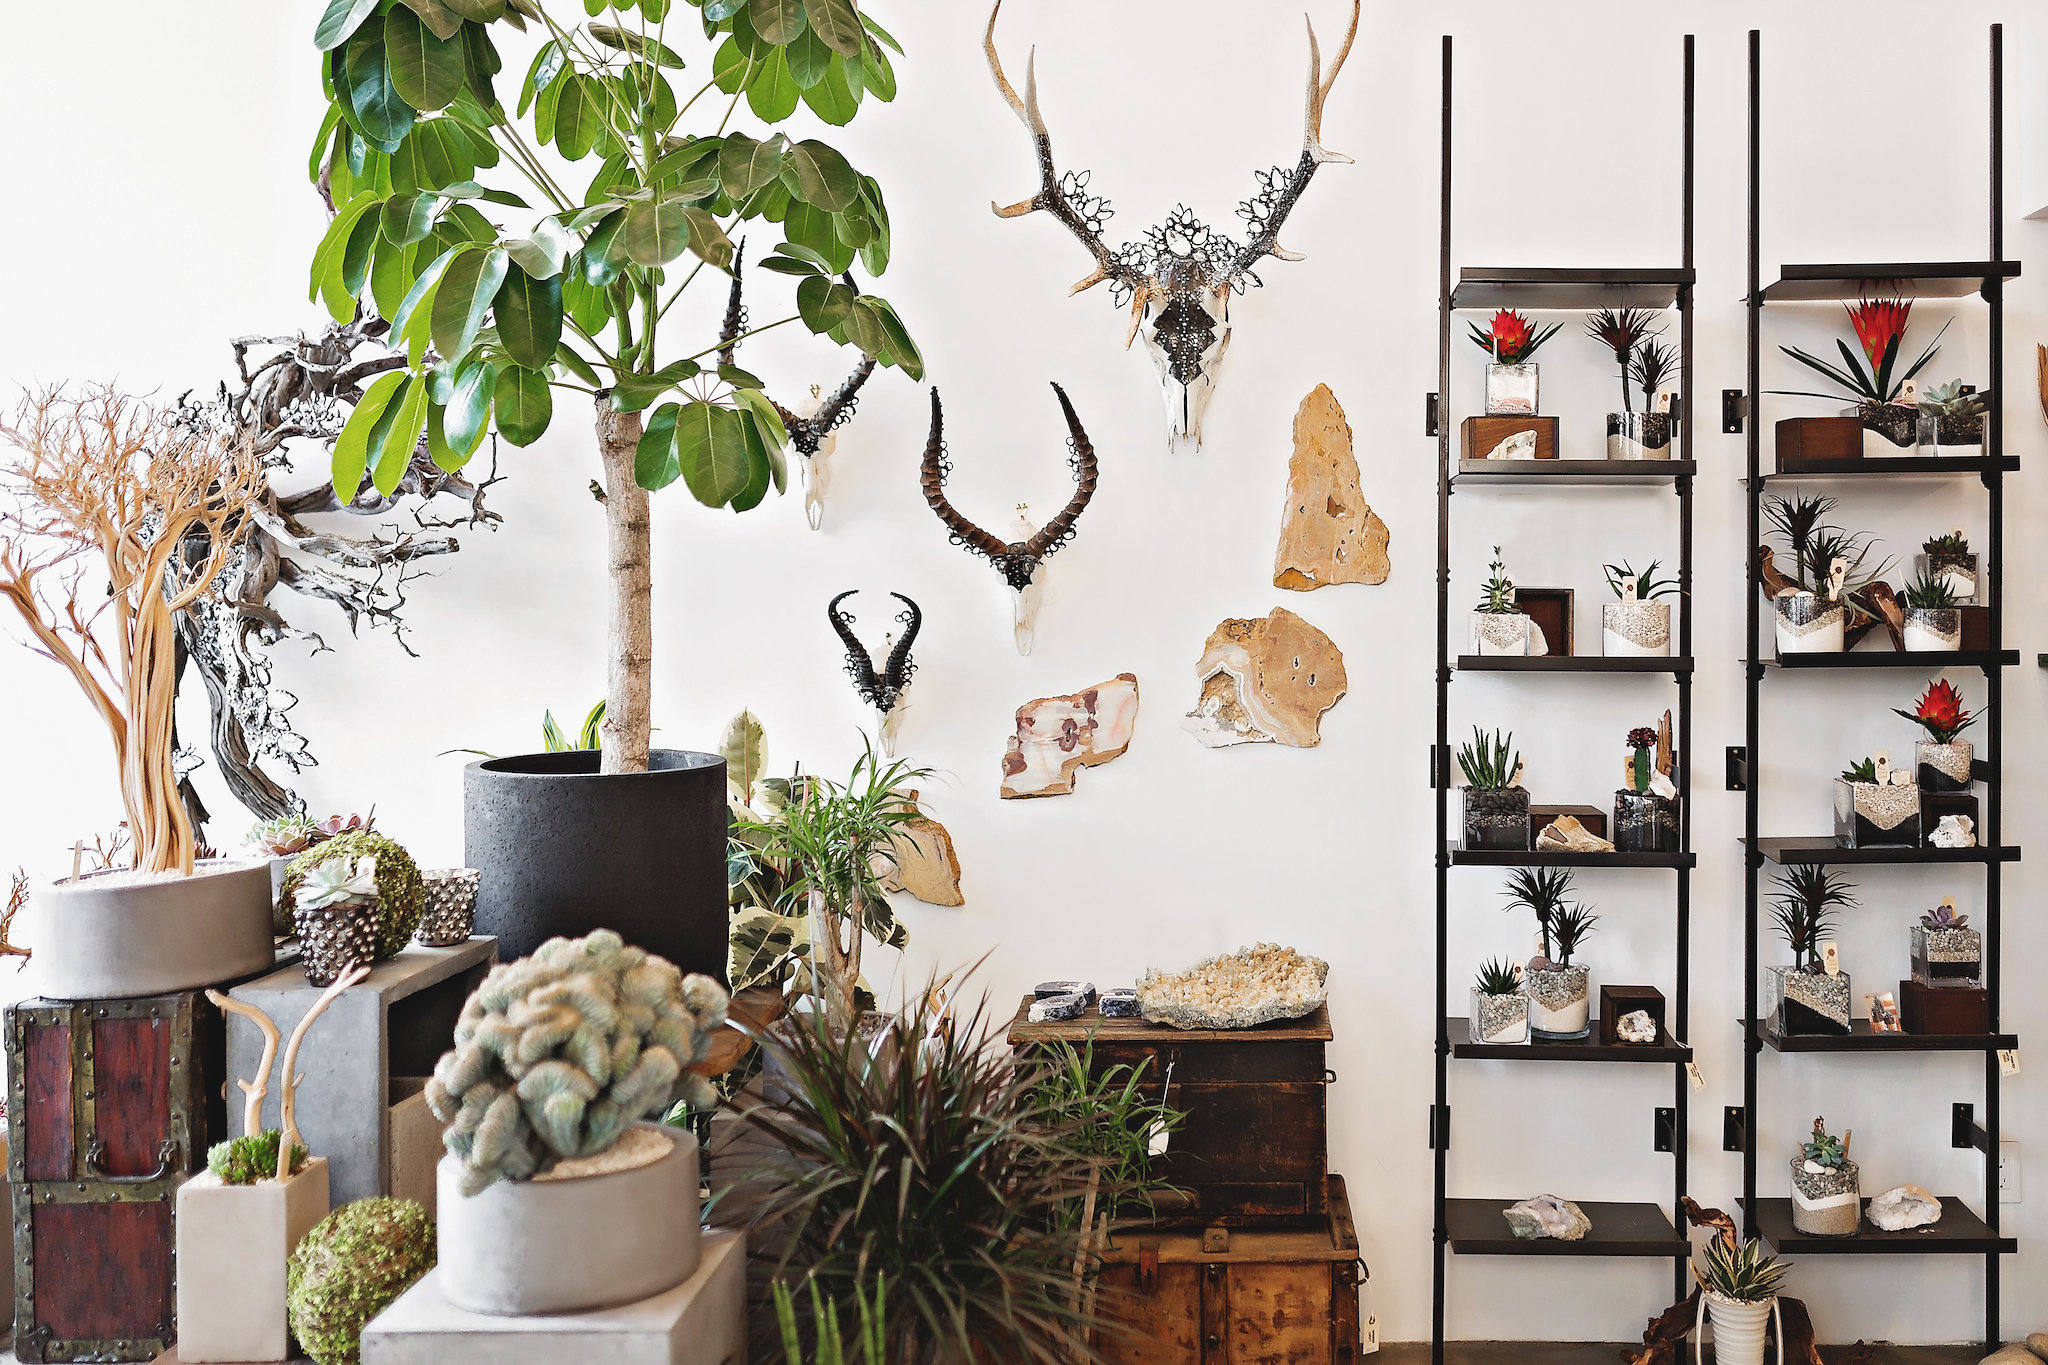 California interior inspiration and boho living. Organic shopping in California. #California #USA #CA